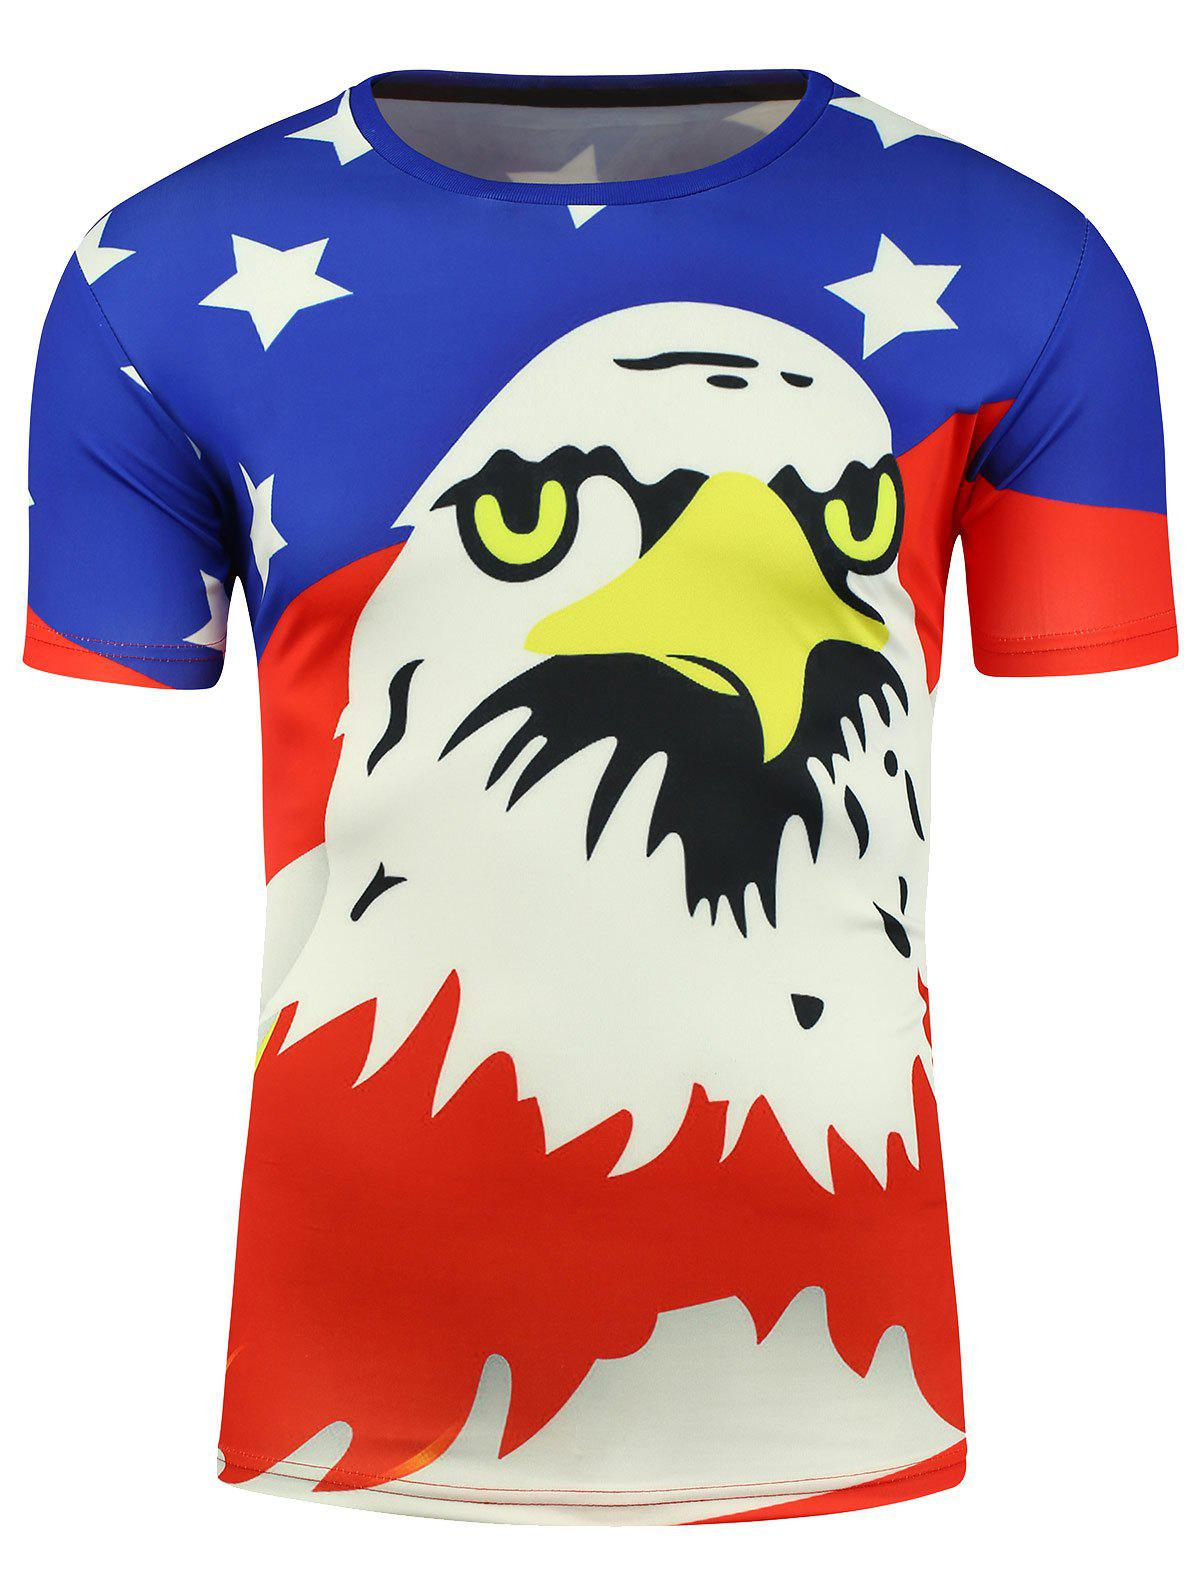 Short Sleeve Cartoon Eagle and American Flag Print T-shirt - COLORMIX 2XL